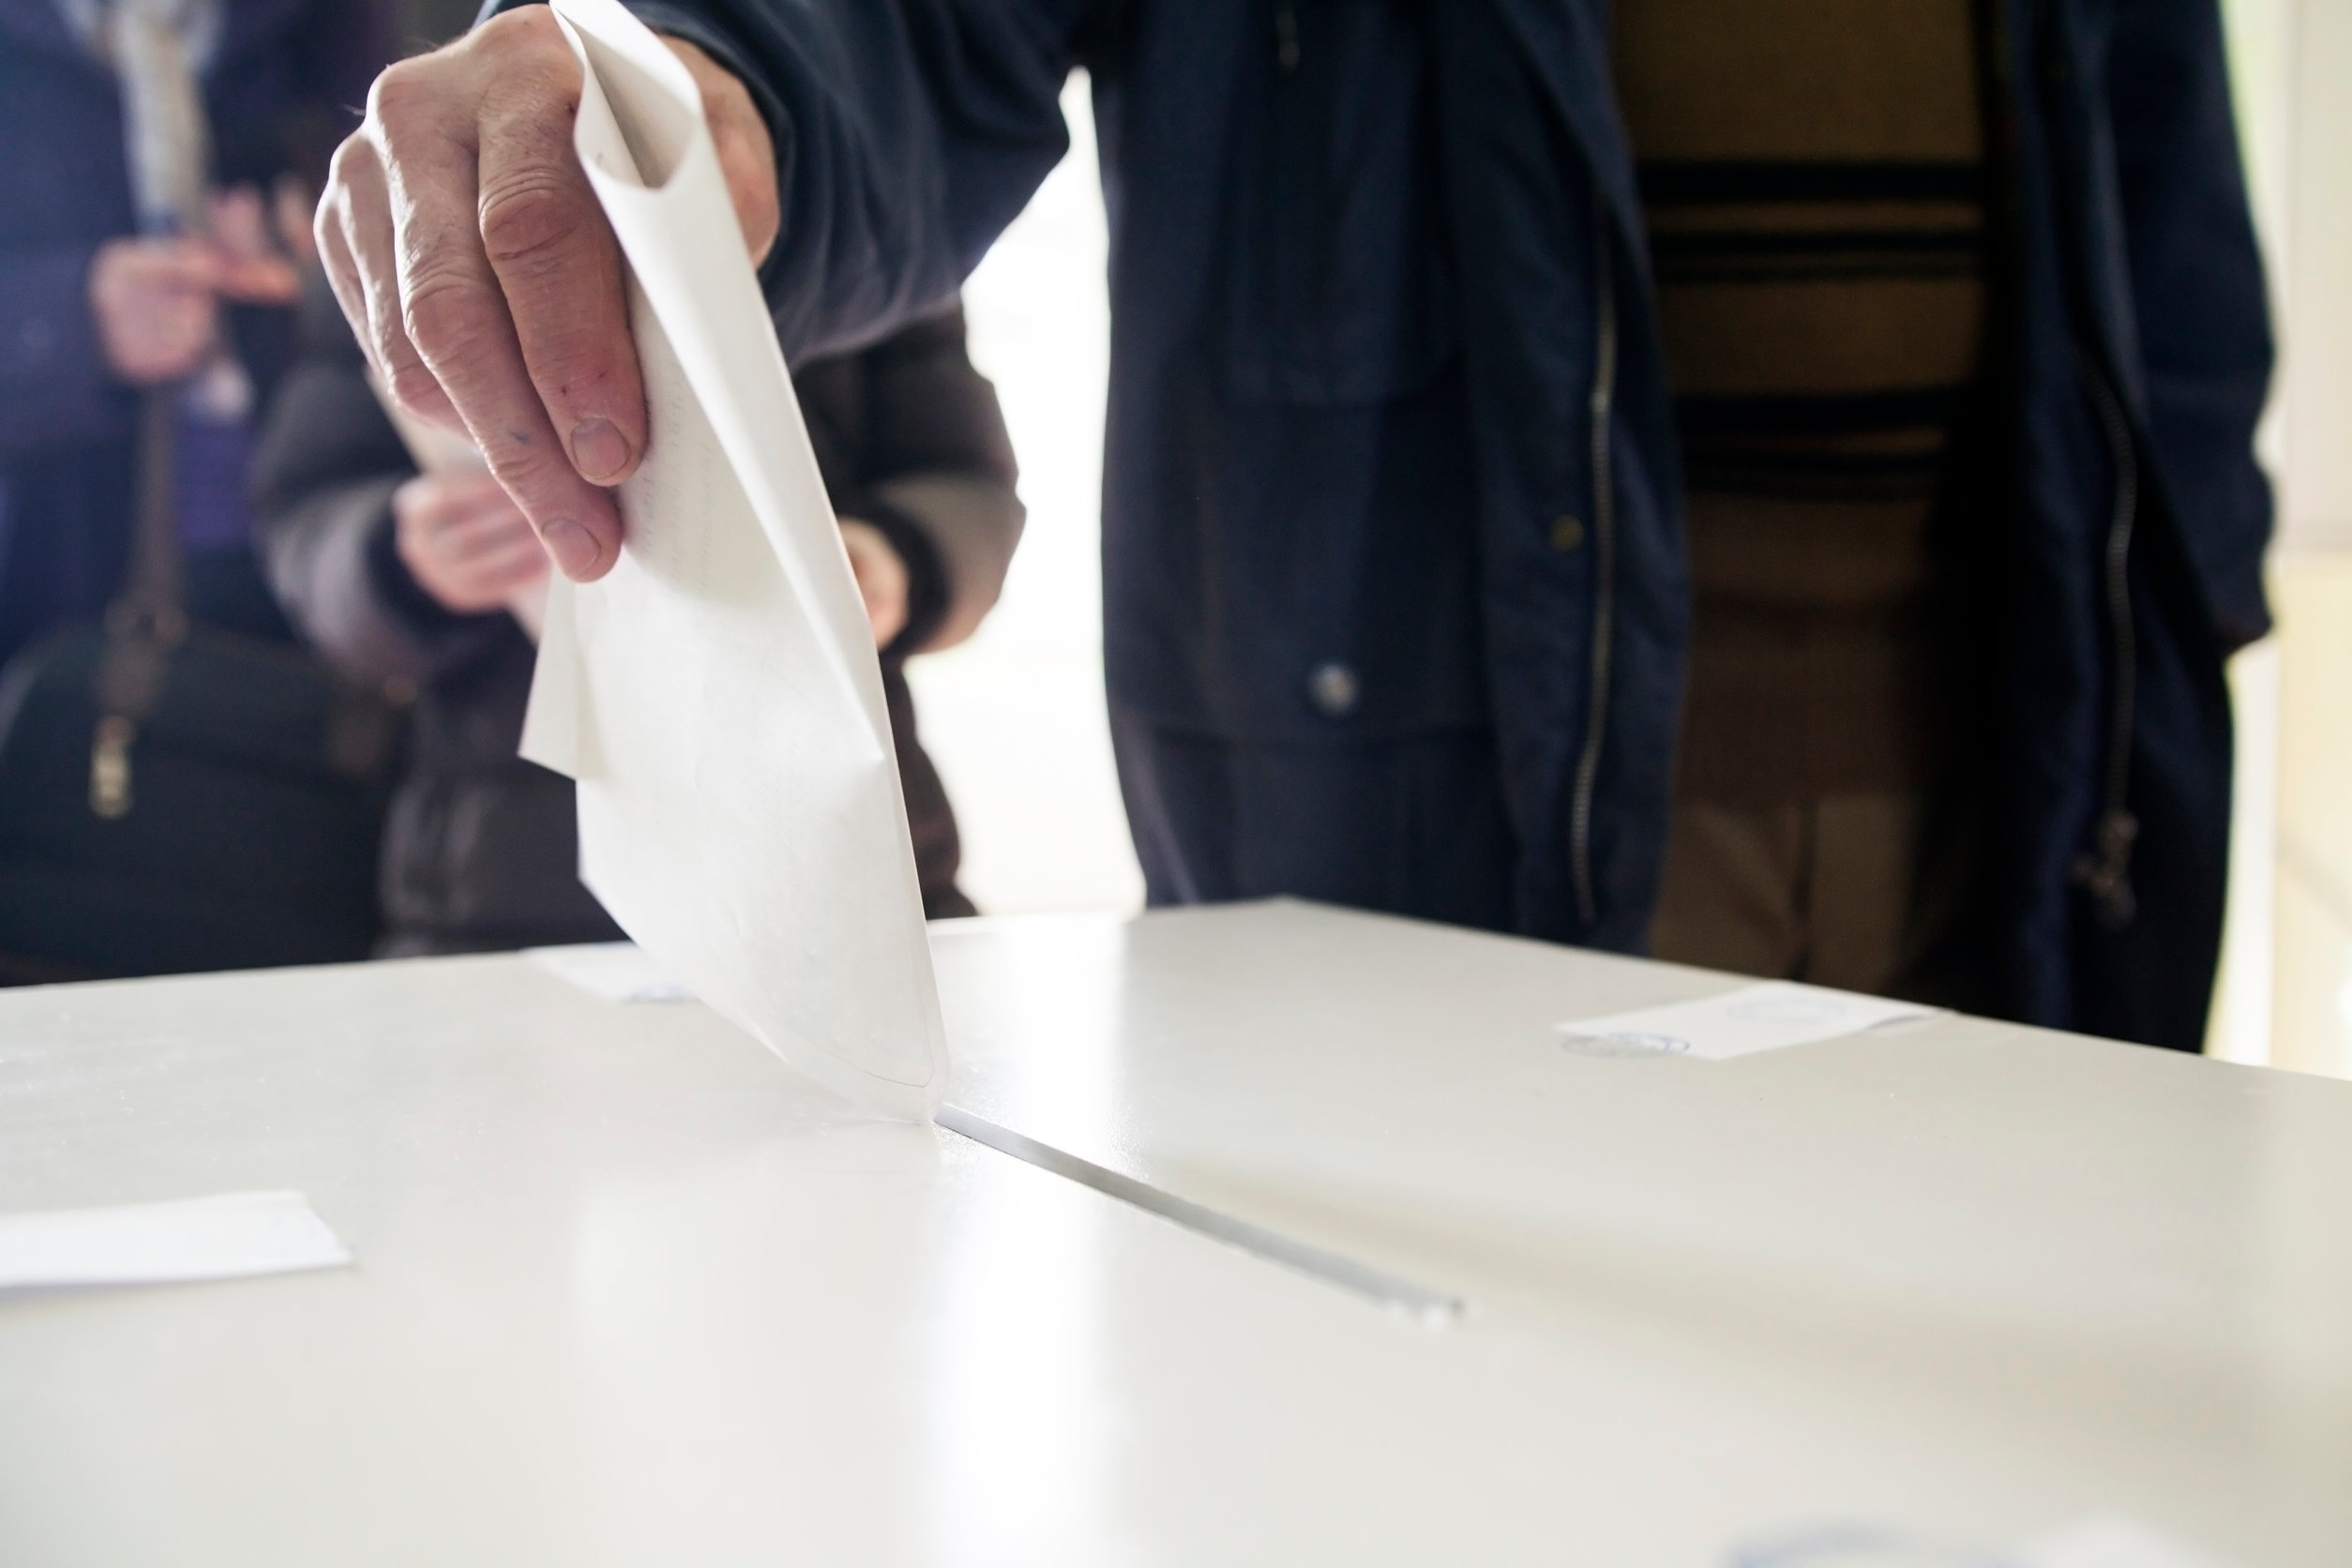 Image description: Hand of a person casting a ballot at a polling station during voting.